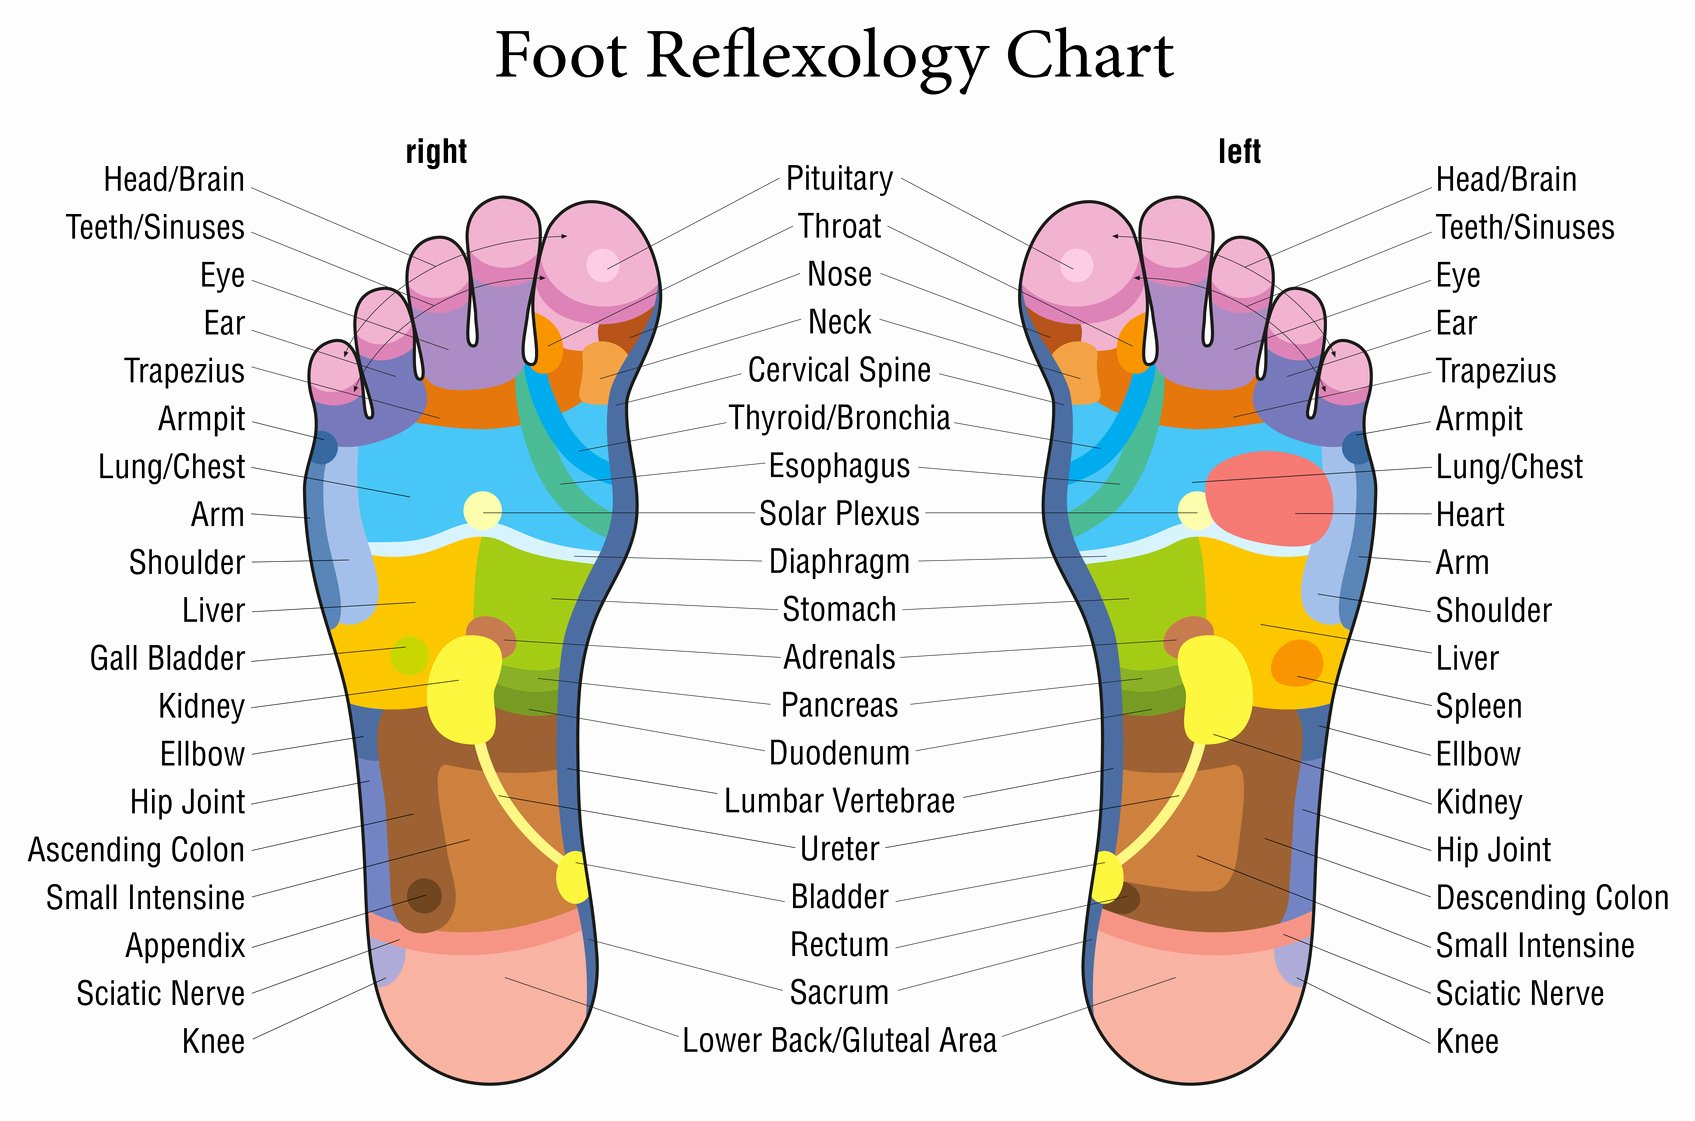 Hand and Foot Reflexology Chart Awesome This is What Happens when You touch these Points Your Feet